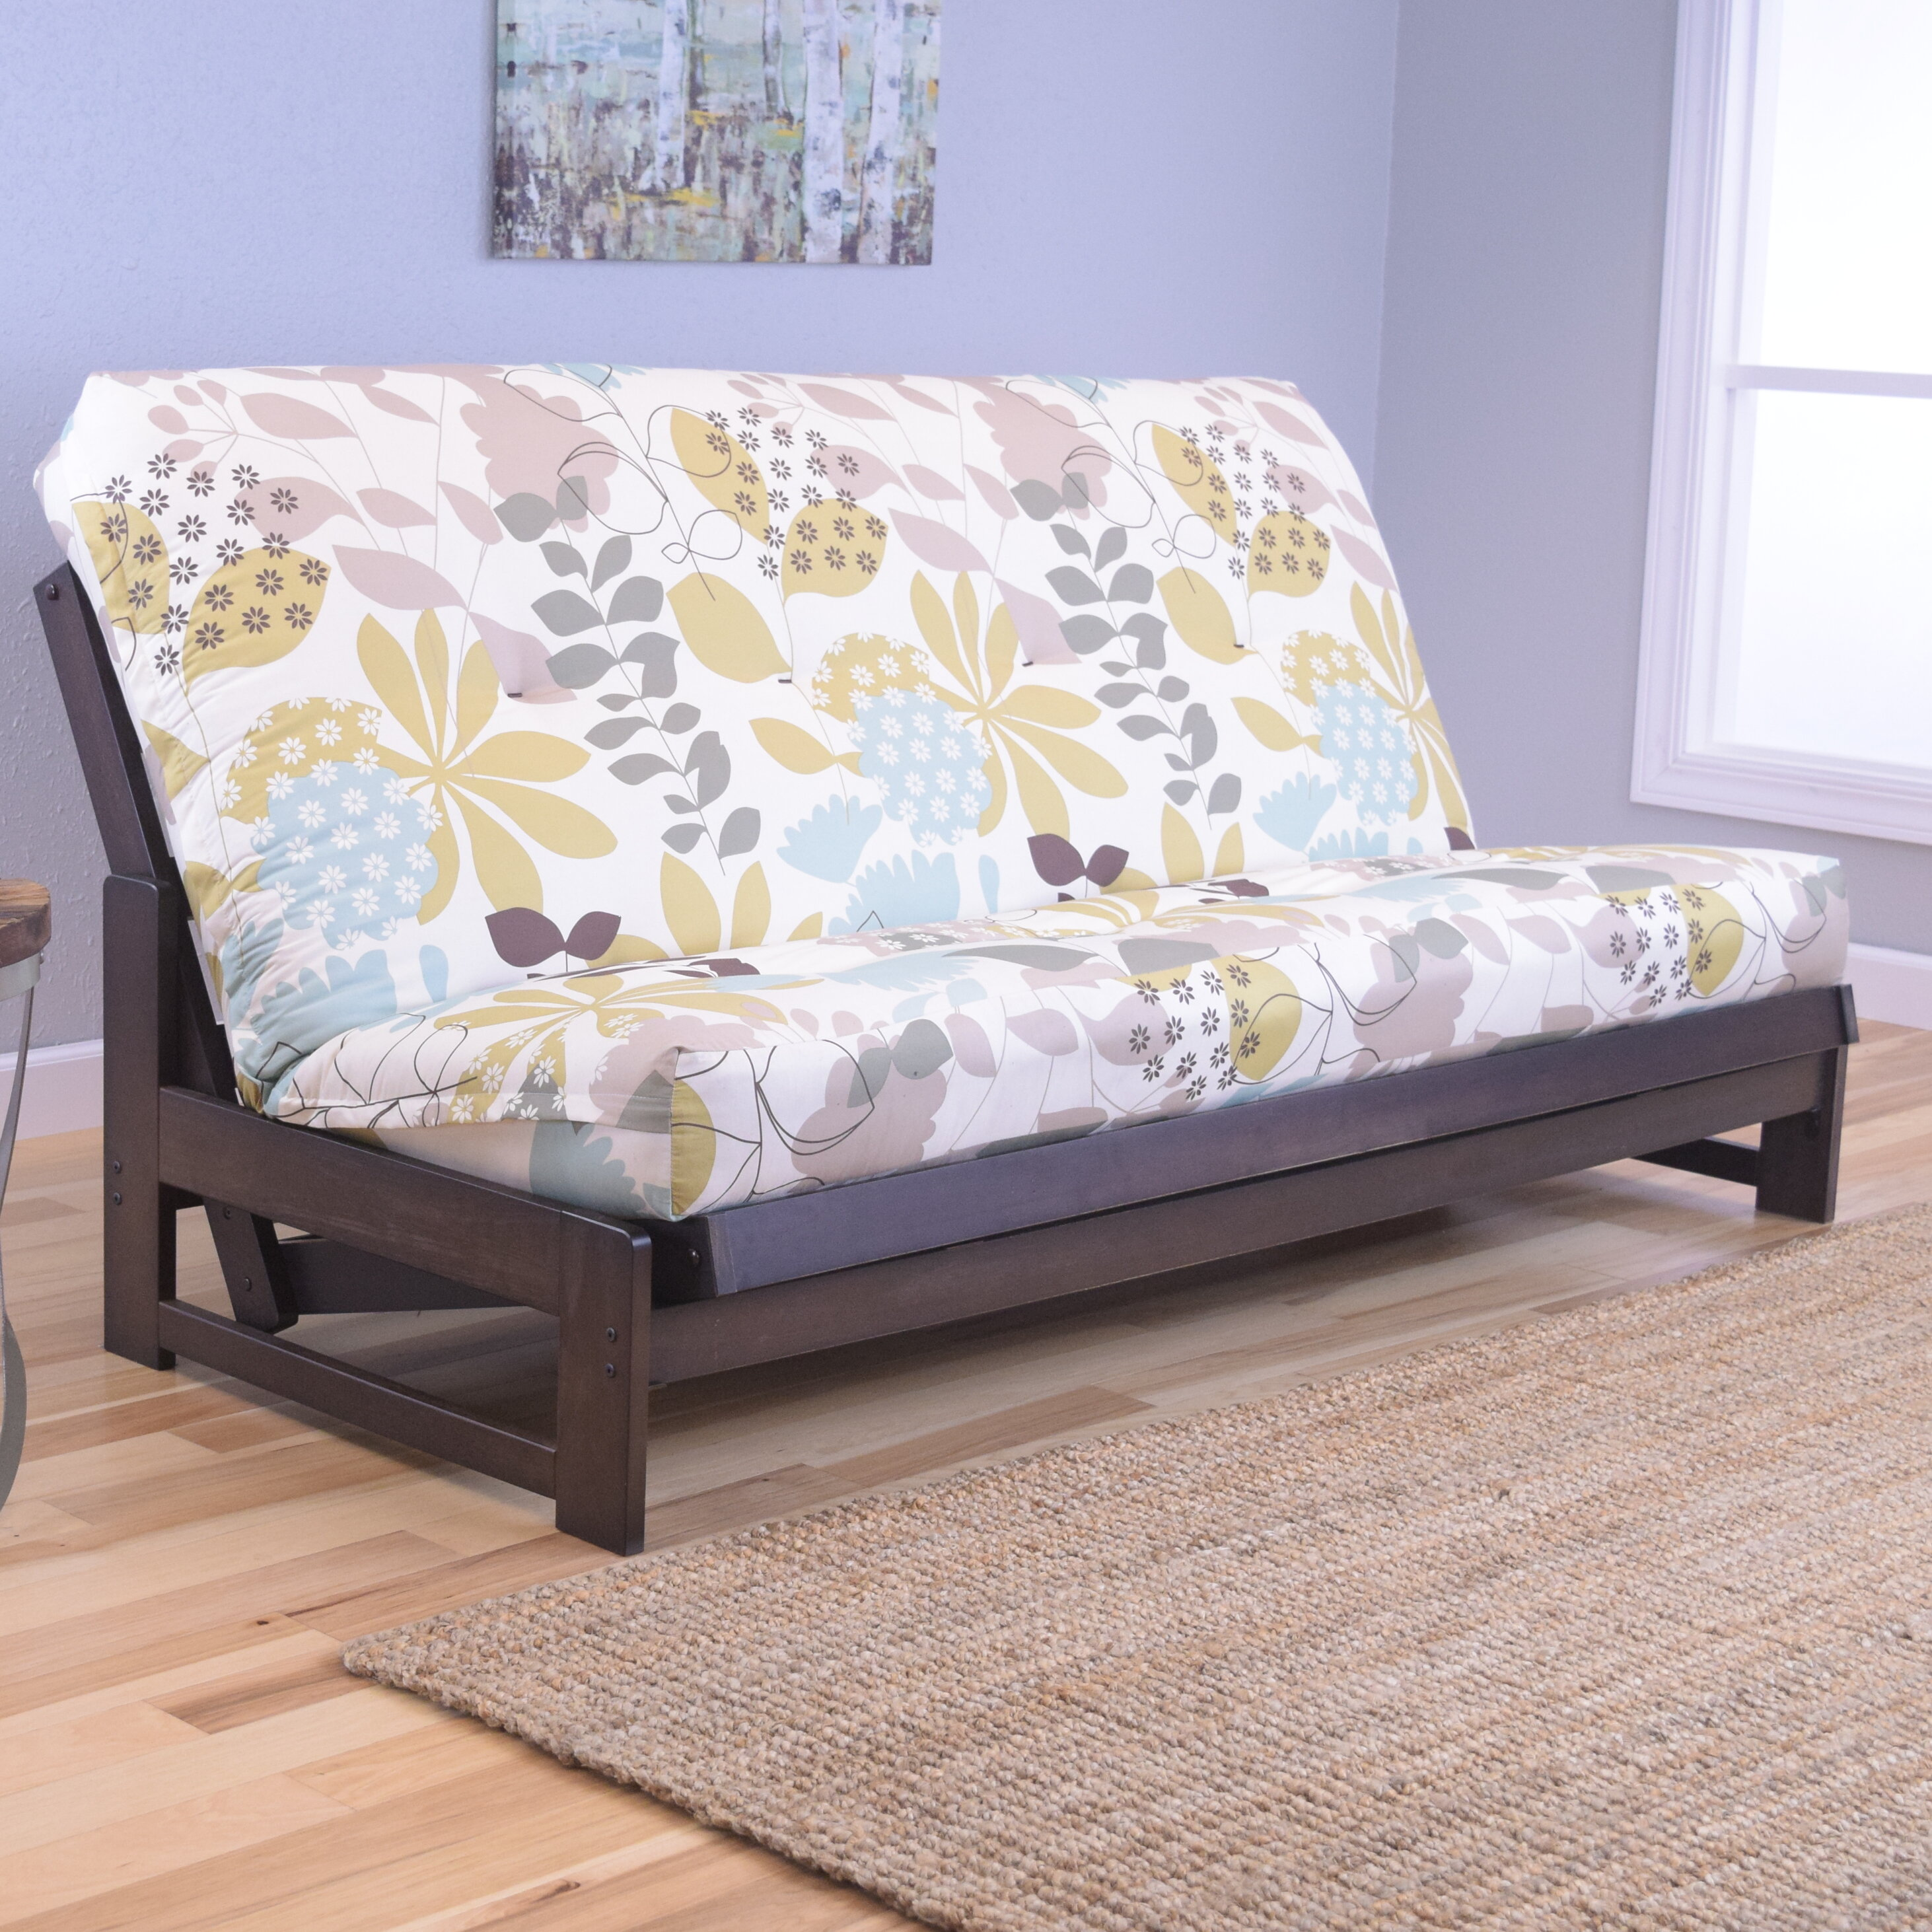 day futons victoria futon address htm new top next email steel s friend delivery p york rated